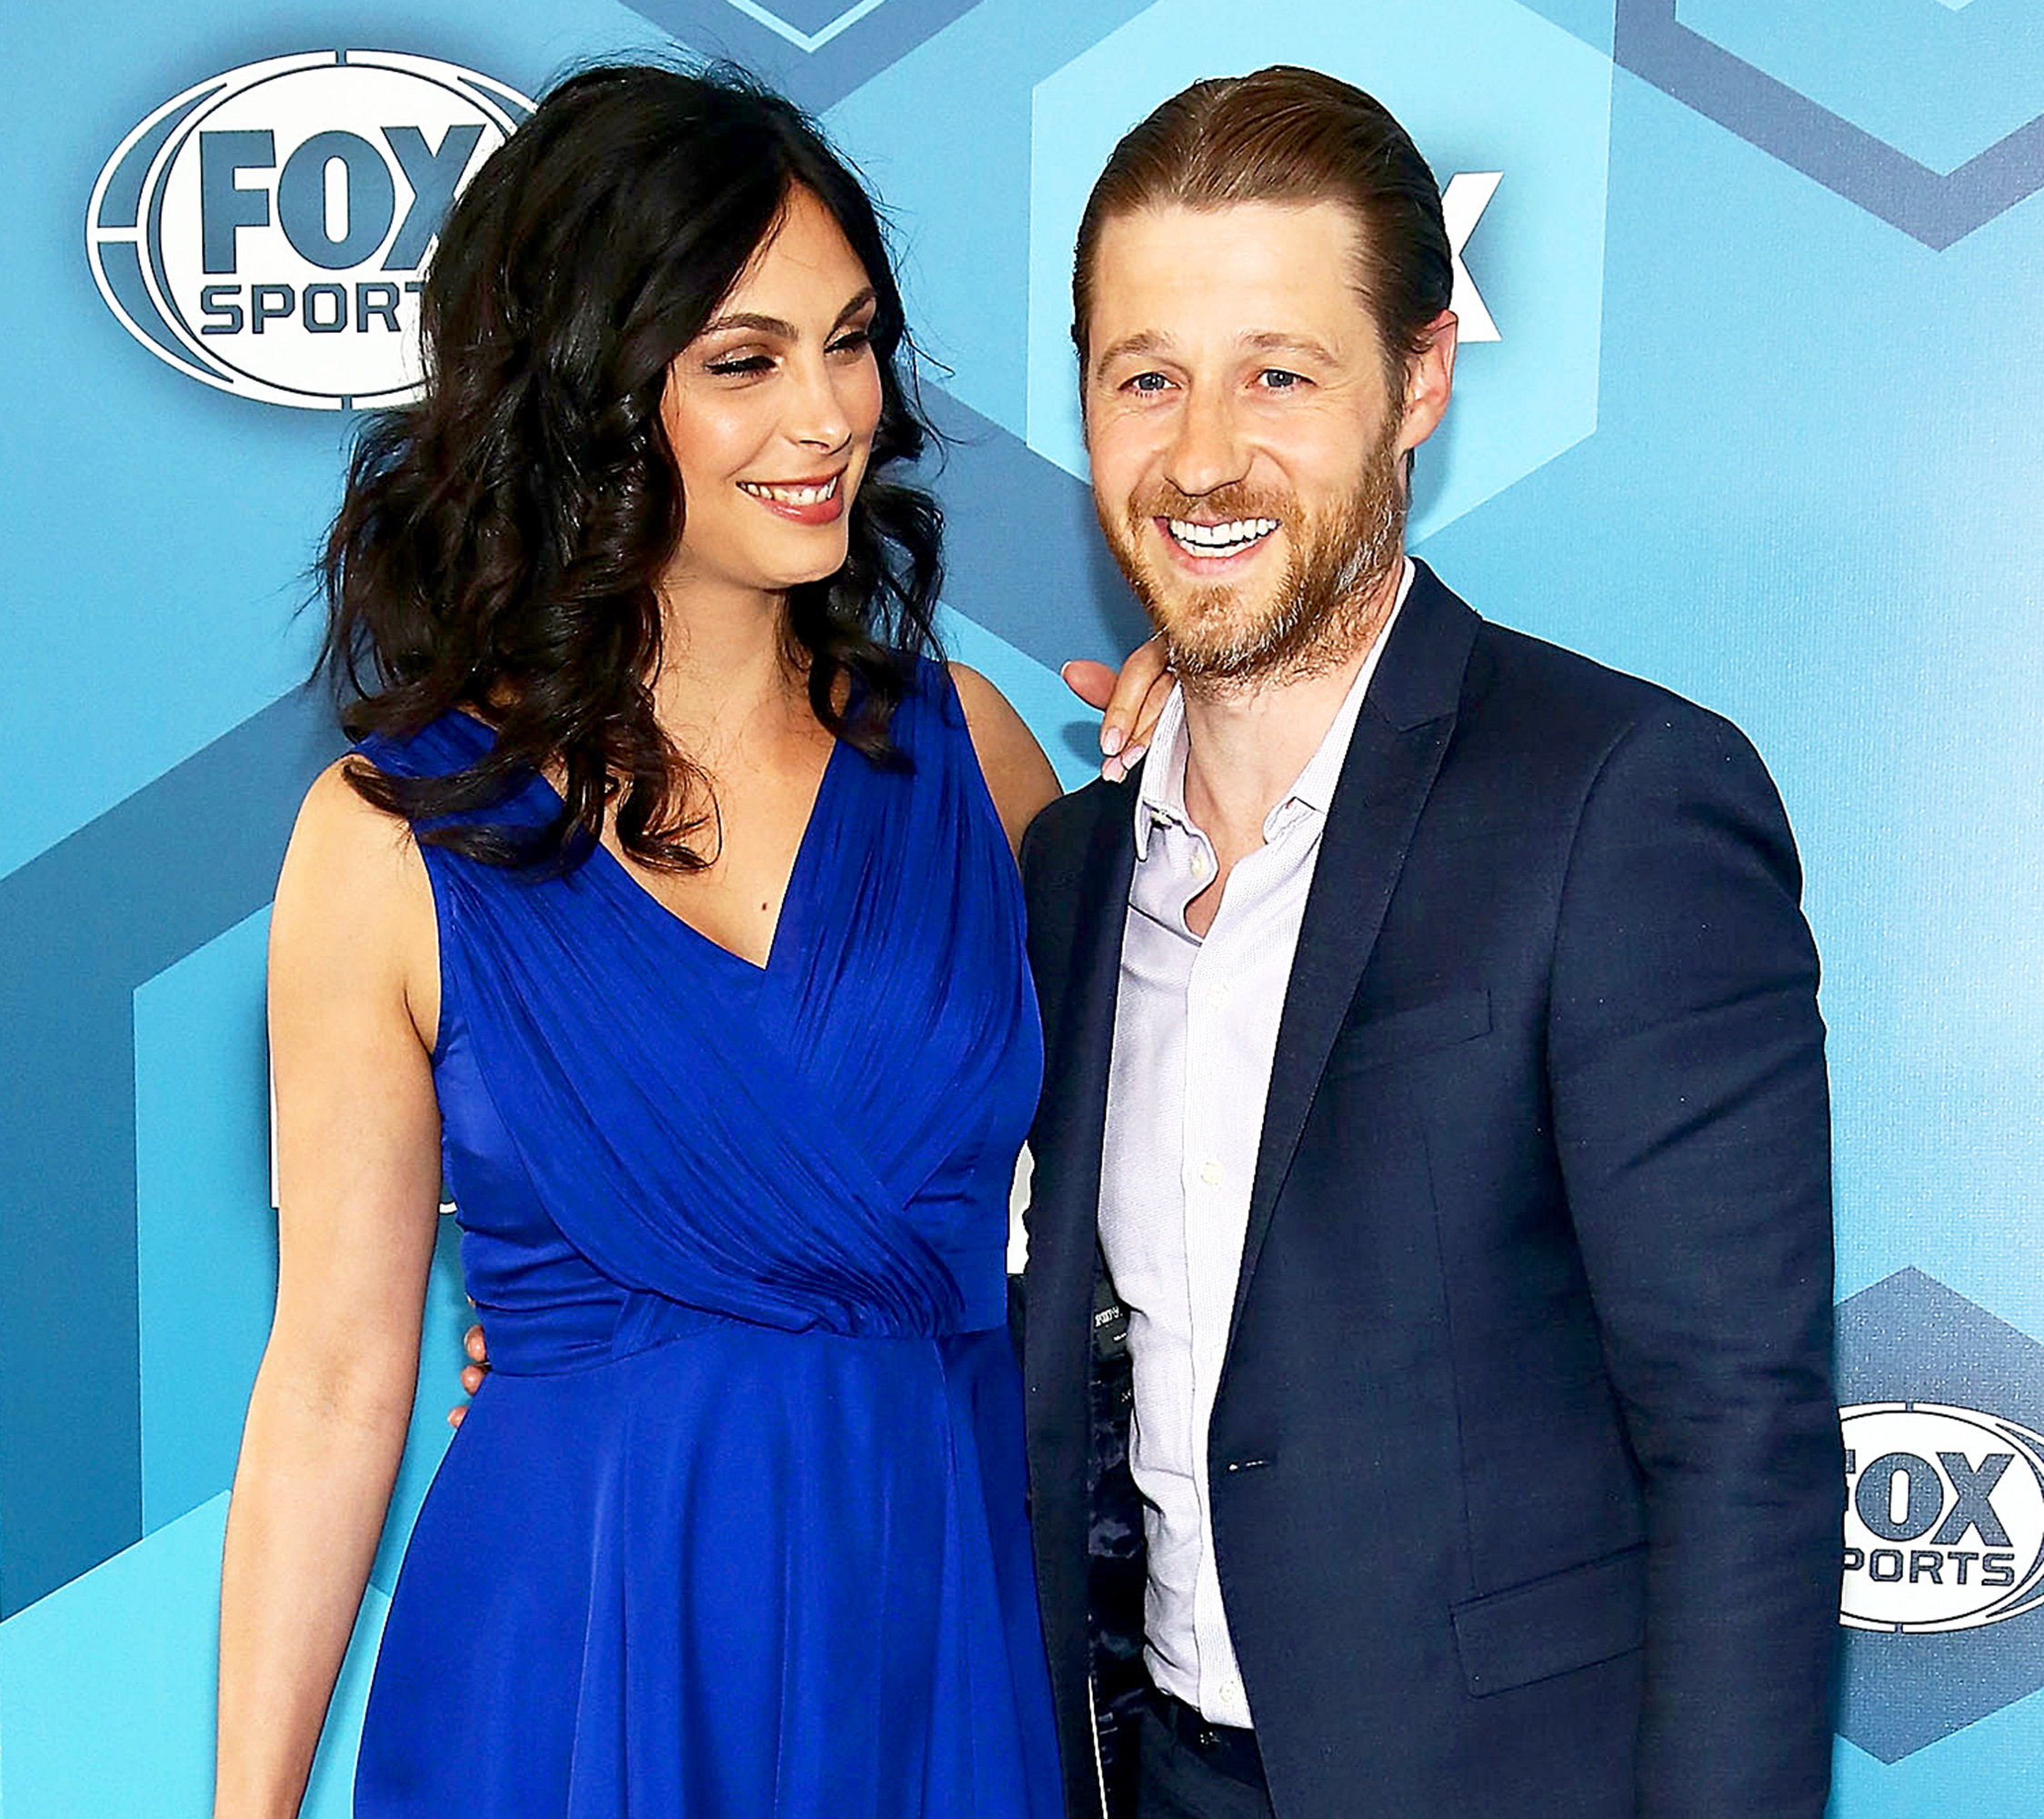 Morena Baccarin and Ben McKenzie